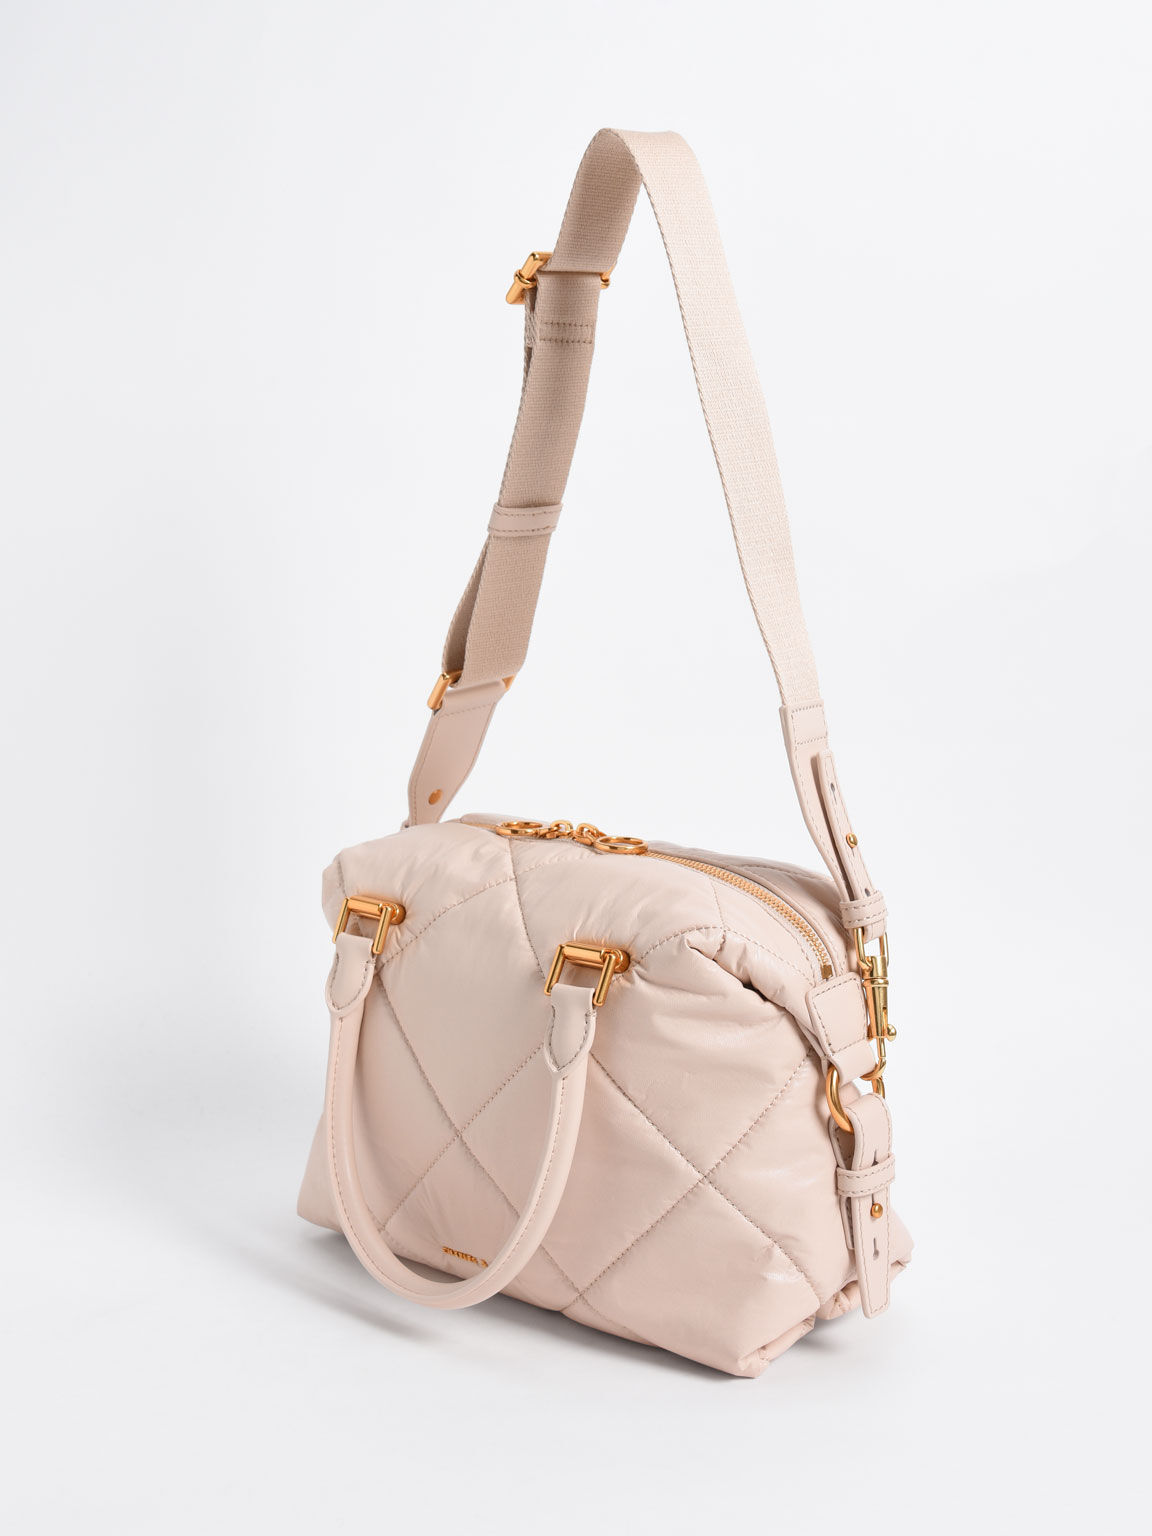 Puffy Quilted Tote Bag, Light Pink, hi-res